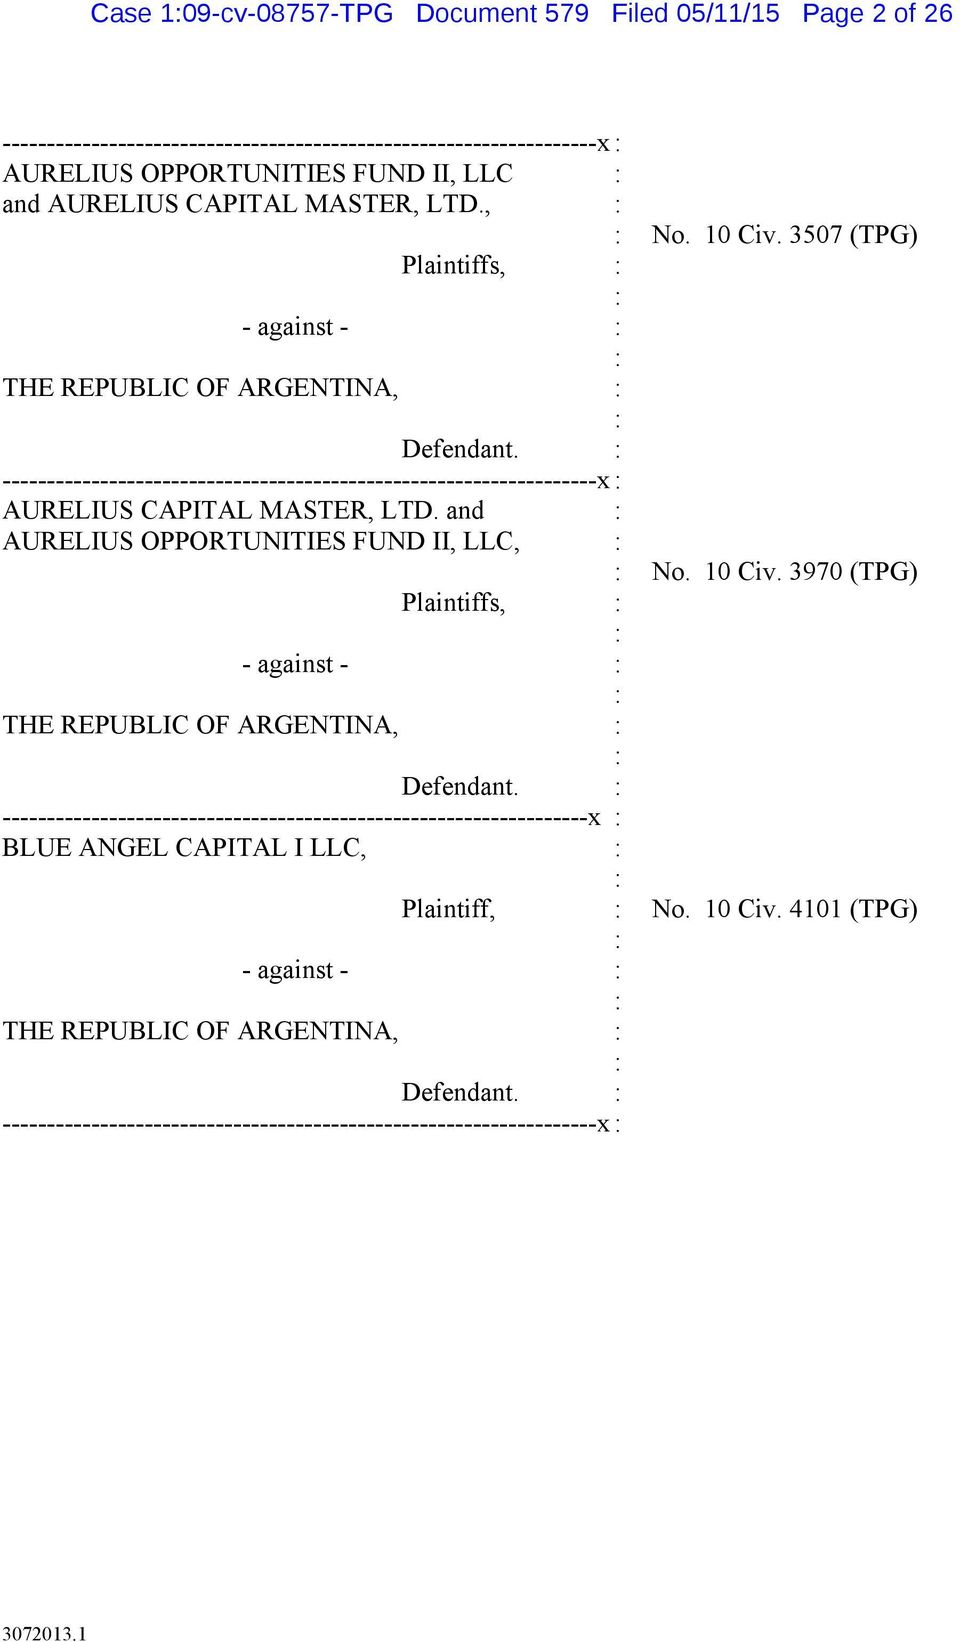 and AURELIUS OPPORTUNITIES FUND II, LLC, - against - THE REPUBLIC OF ARGENTINA, Plaintiffs, Defendant.